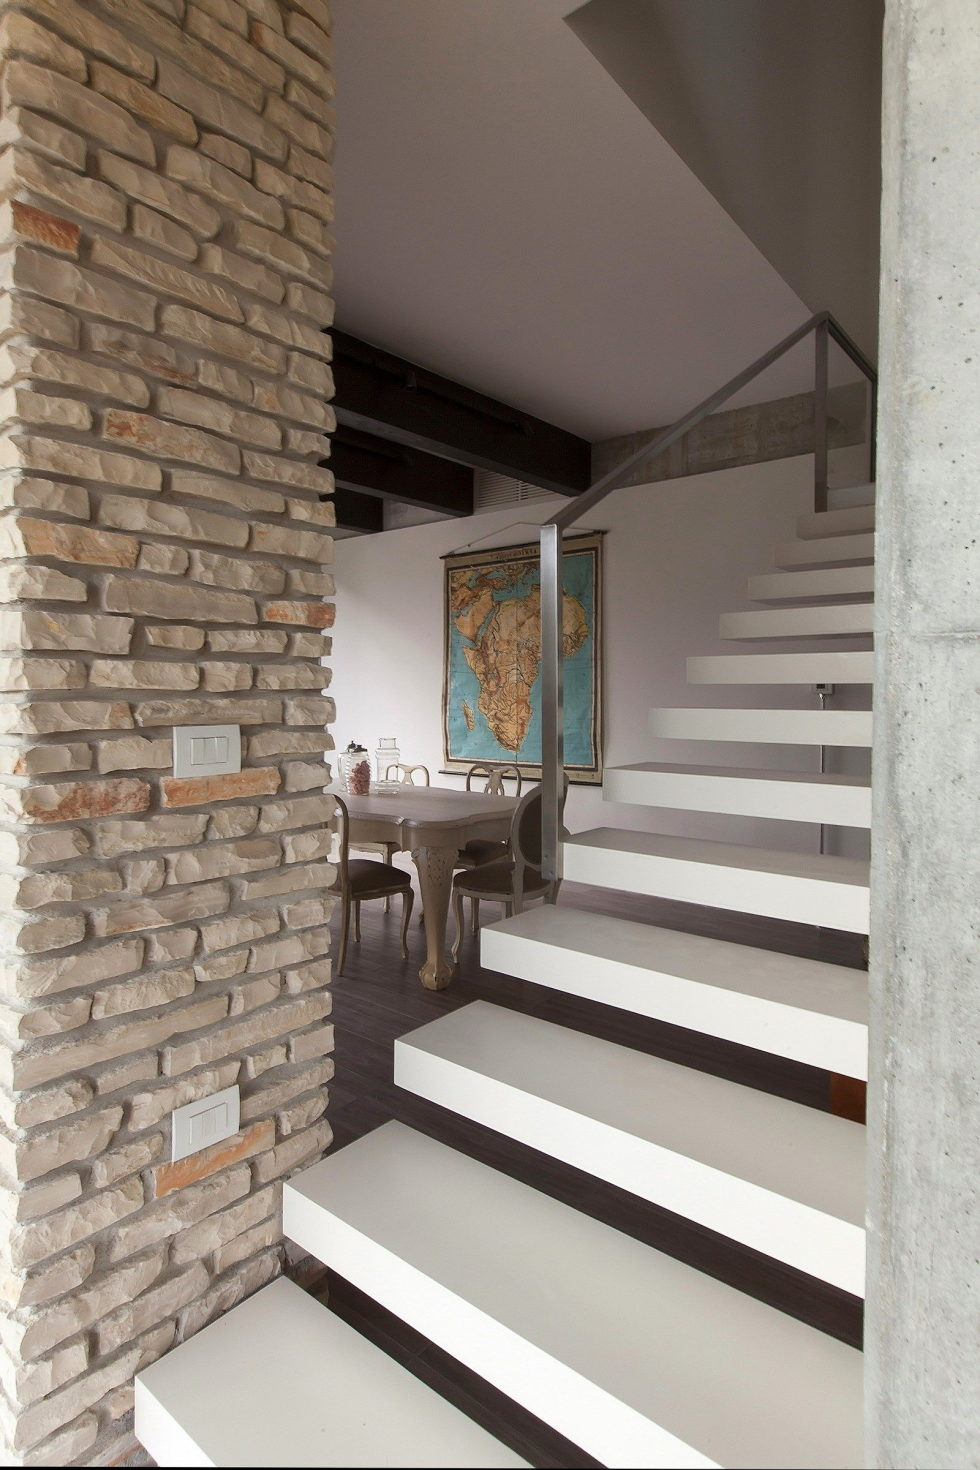 The House For Writer In Bologna From Giraldi Associati Architetti 20